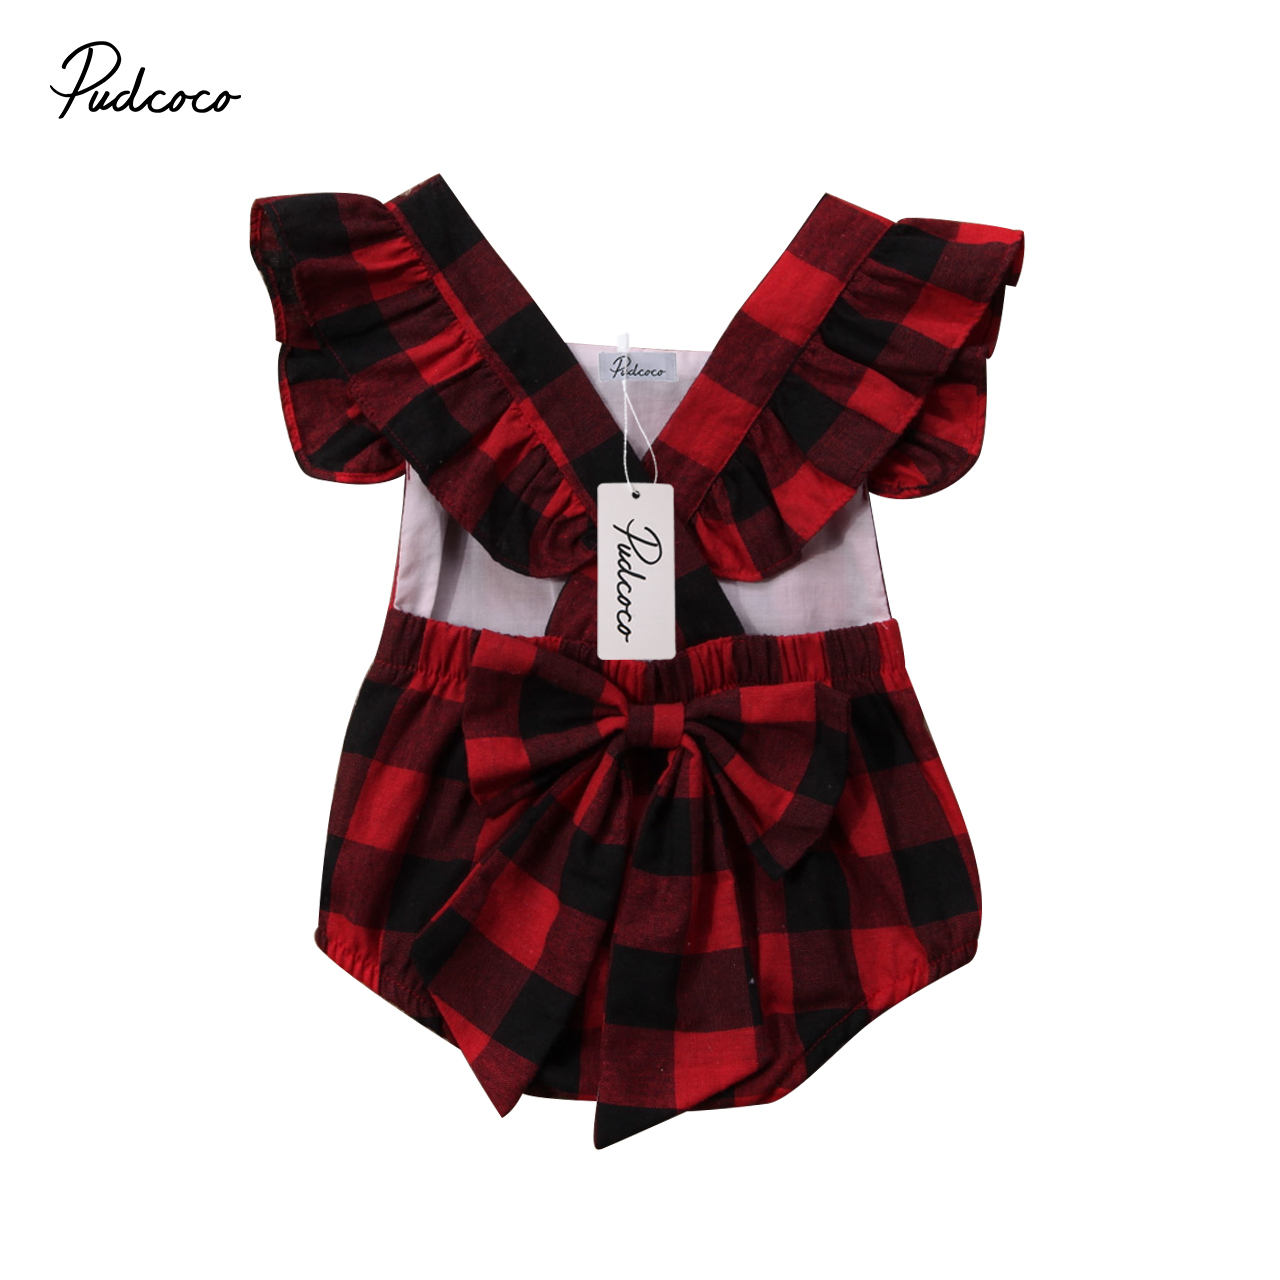 Pudcoco Newborn Sleeveless Baby Girls Bow Romper Ruffle Plaid Backless Jumpsuit Clothes Outfit Cotton One-Piece 0-18M pudcoco newborn baby girl clothes 2017 summer sleeveless floral romper backless jumpsuit sunsuit children clothes